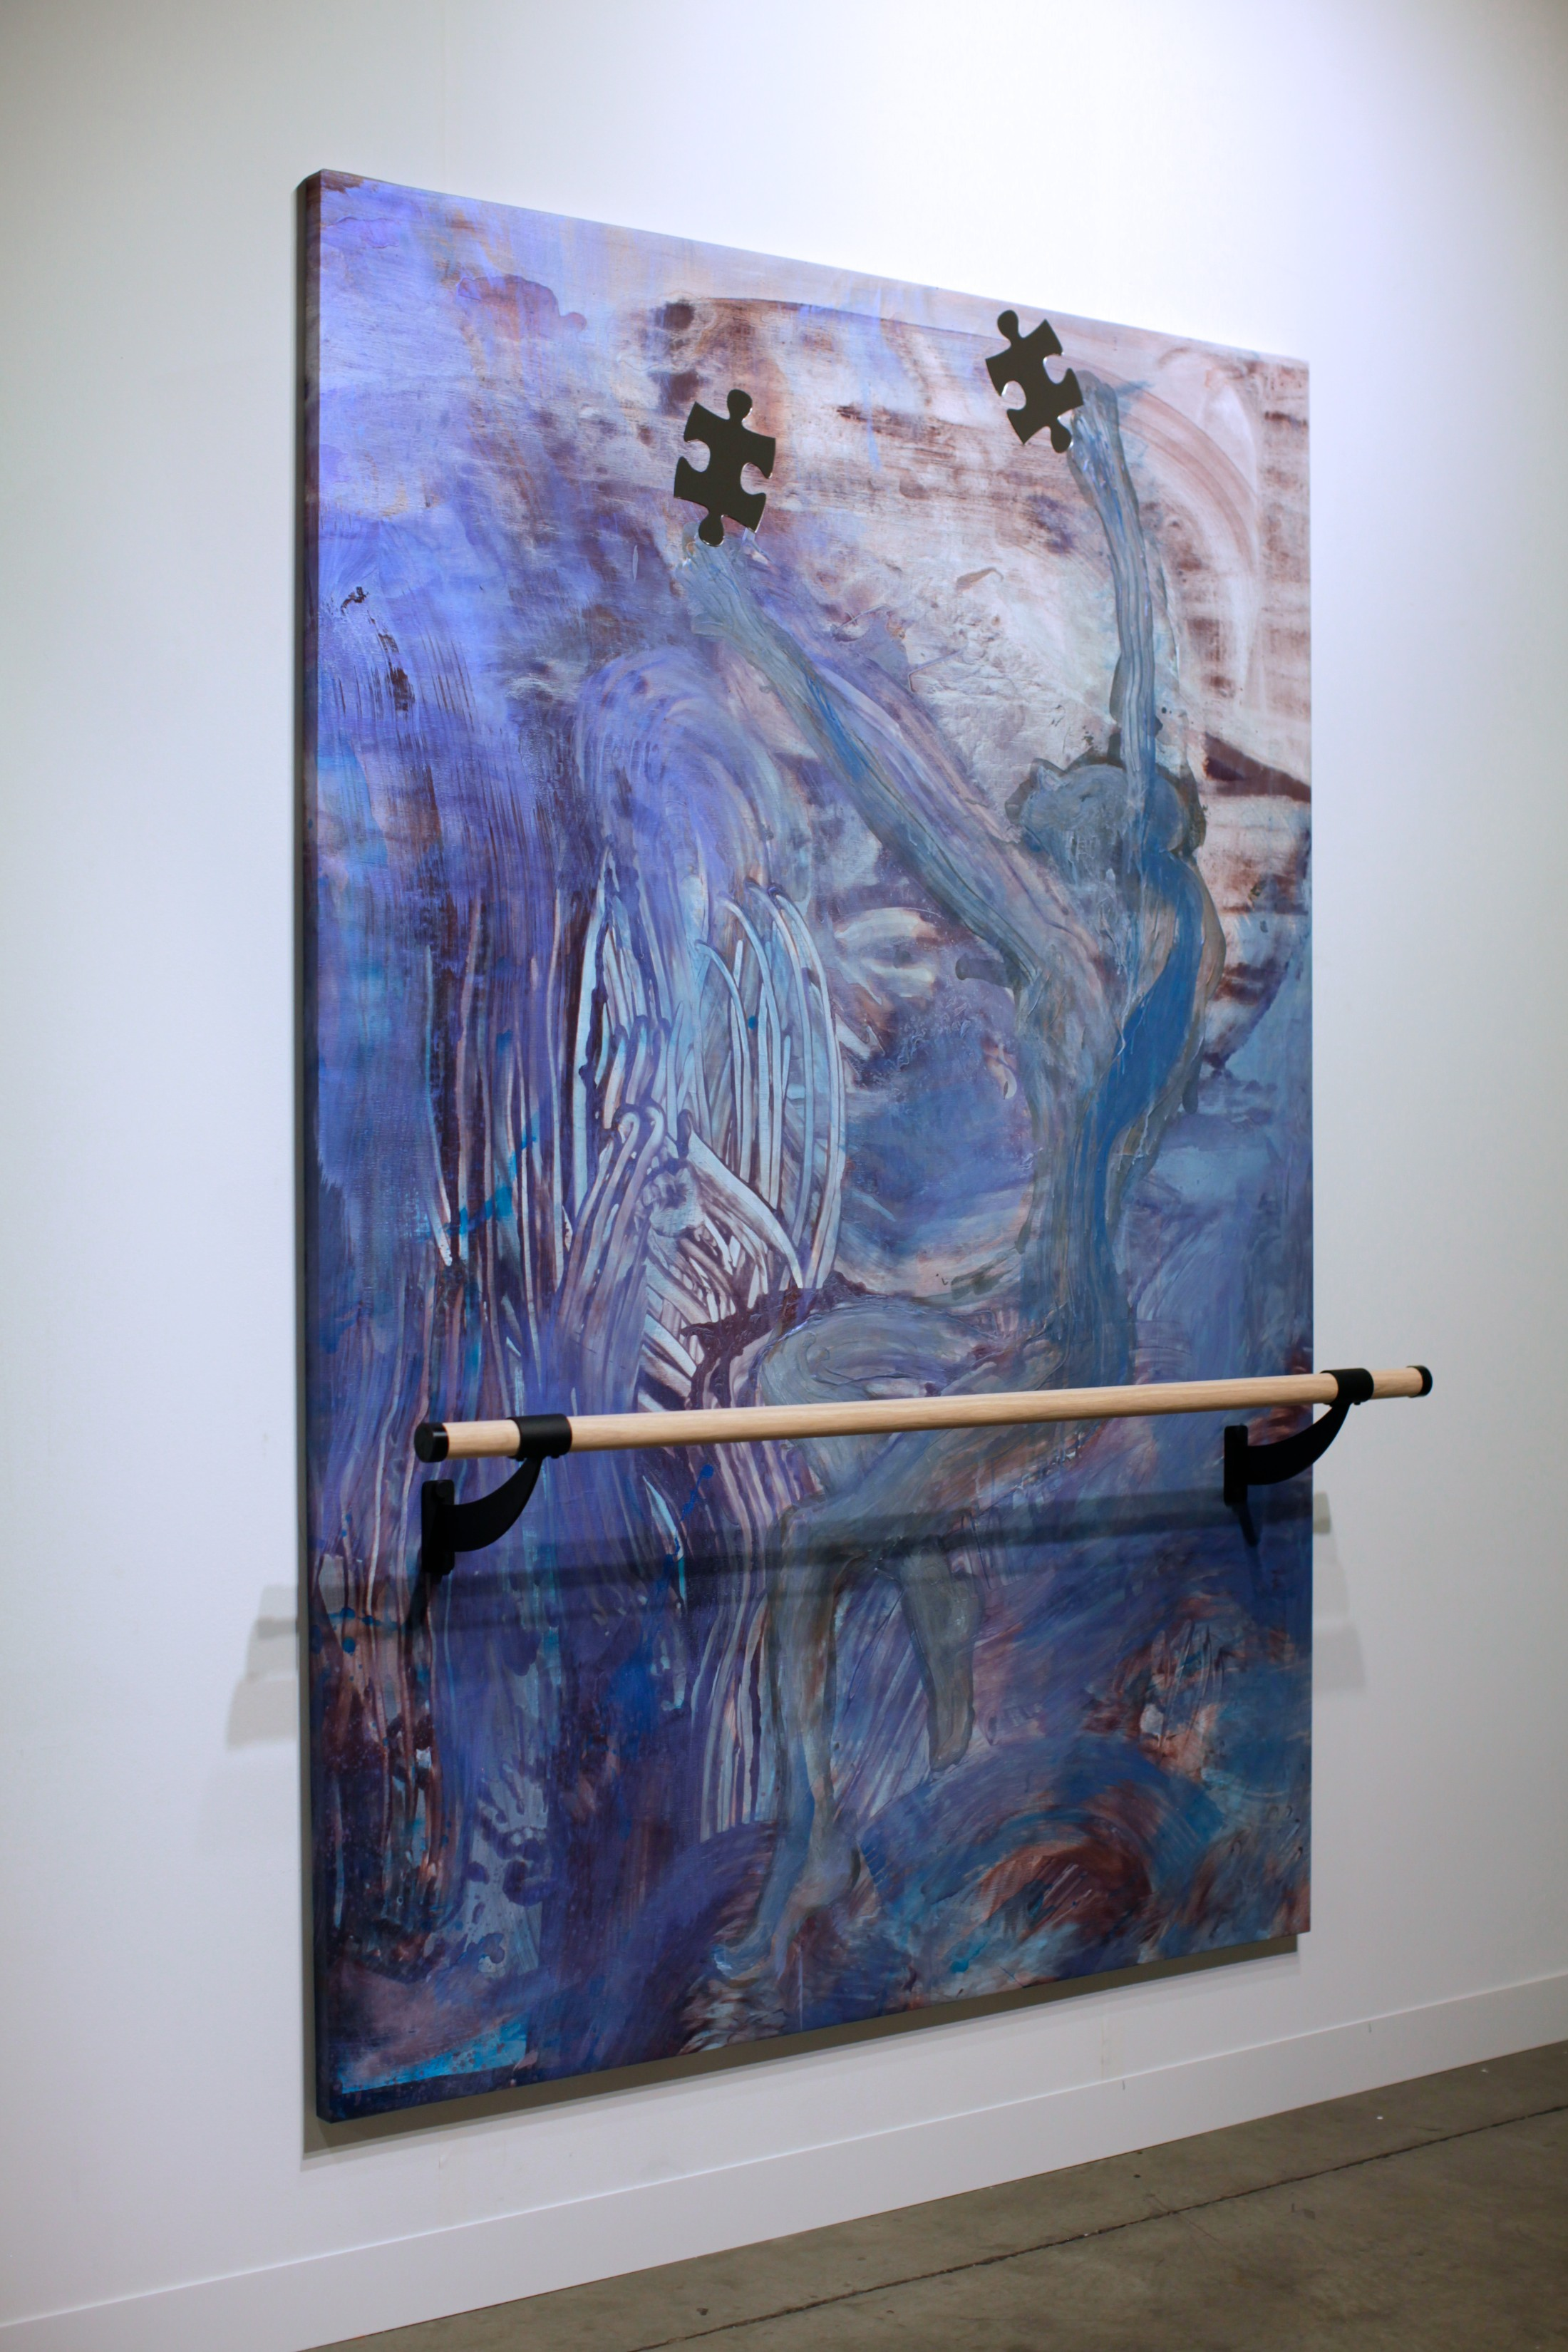 Caveman Catharsis, 7x5 feet, acrylic, mirrored plexiglass, ballet barre on linen, 2014